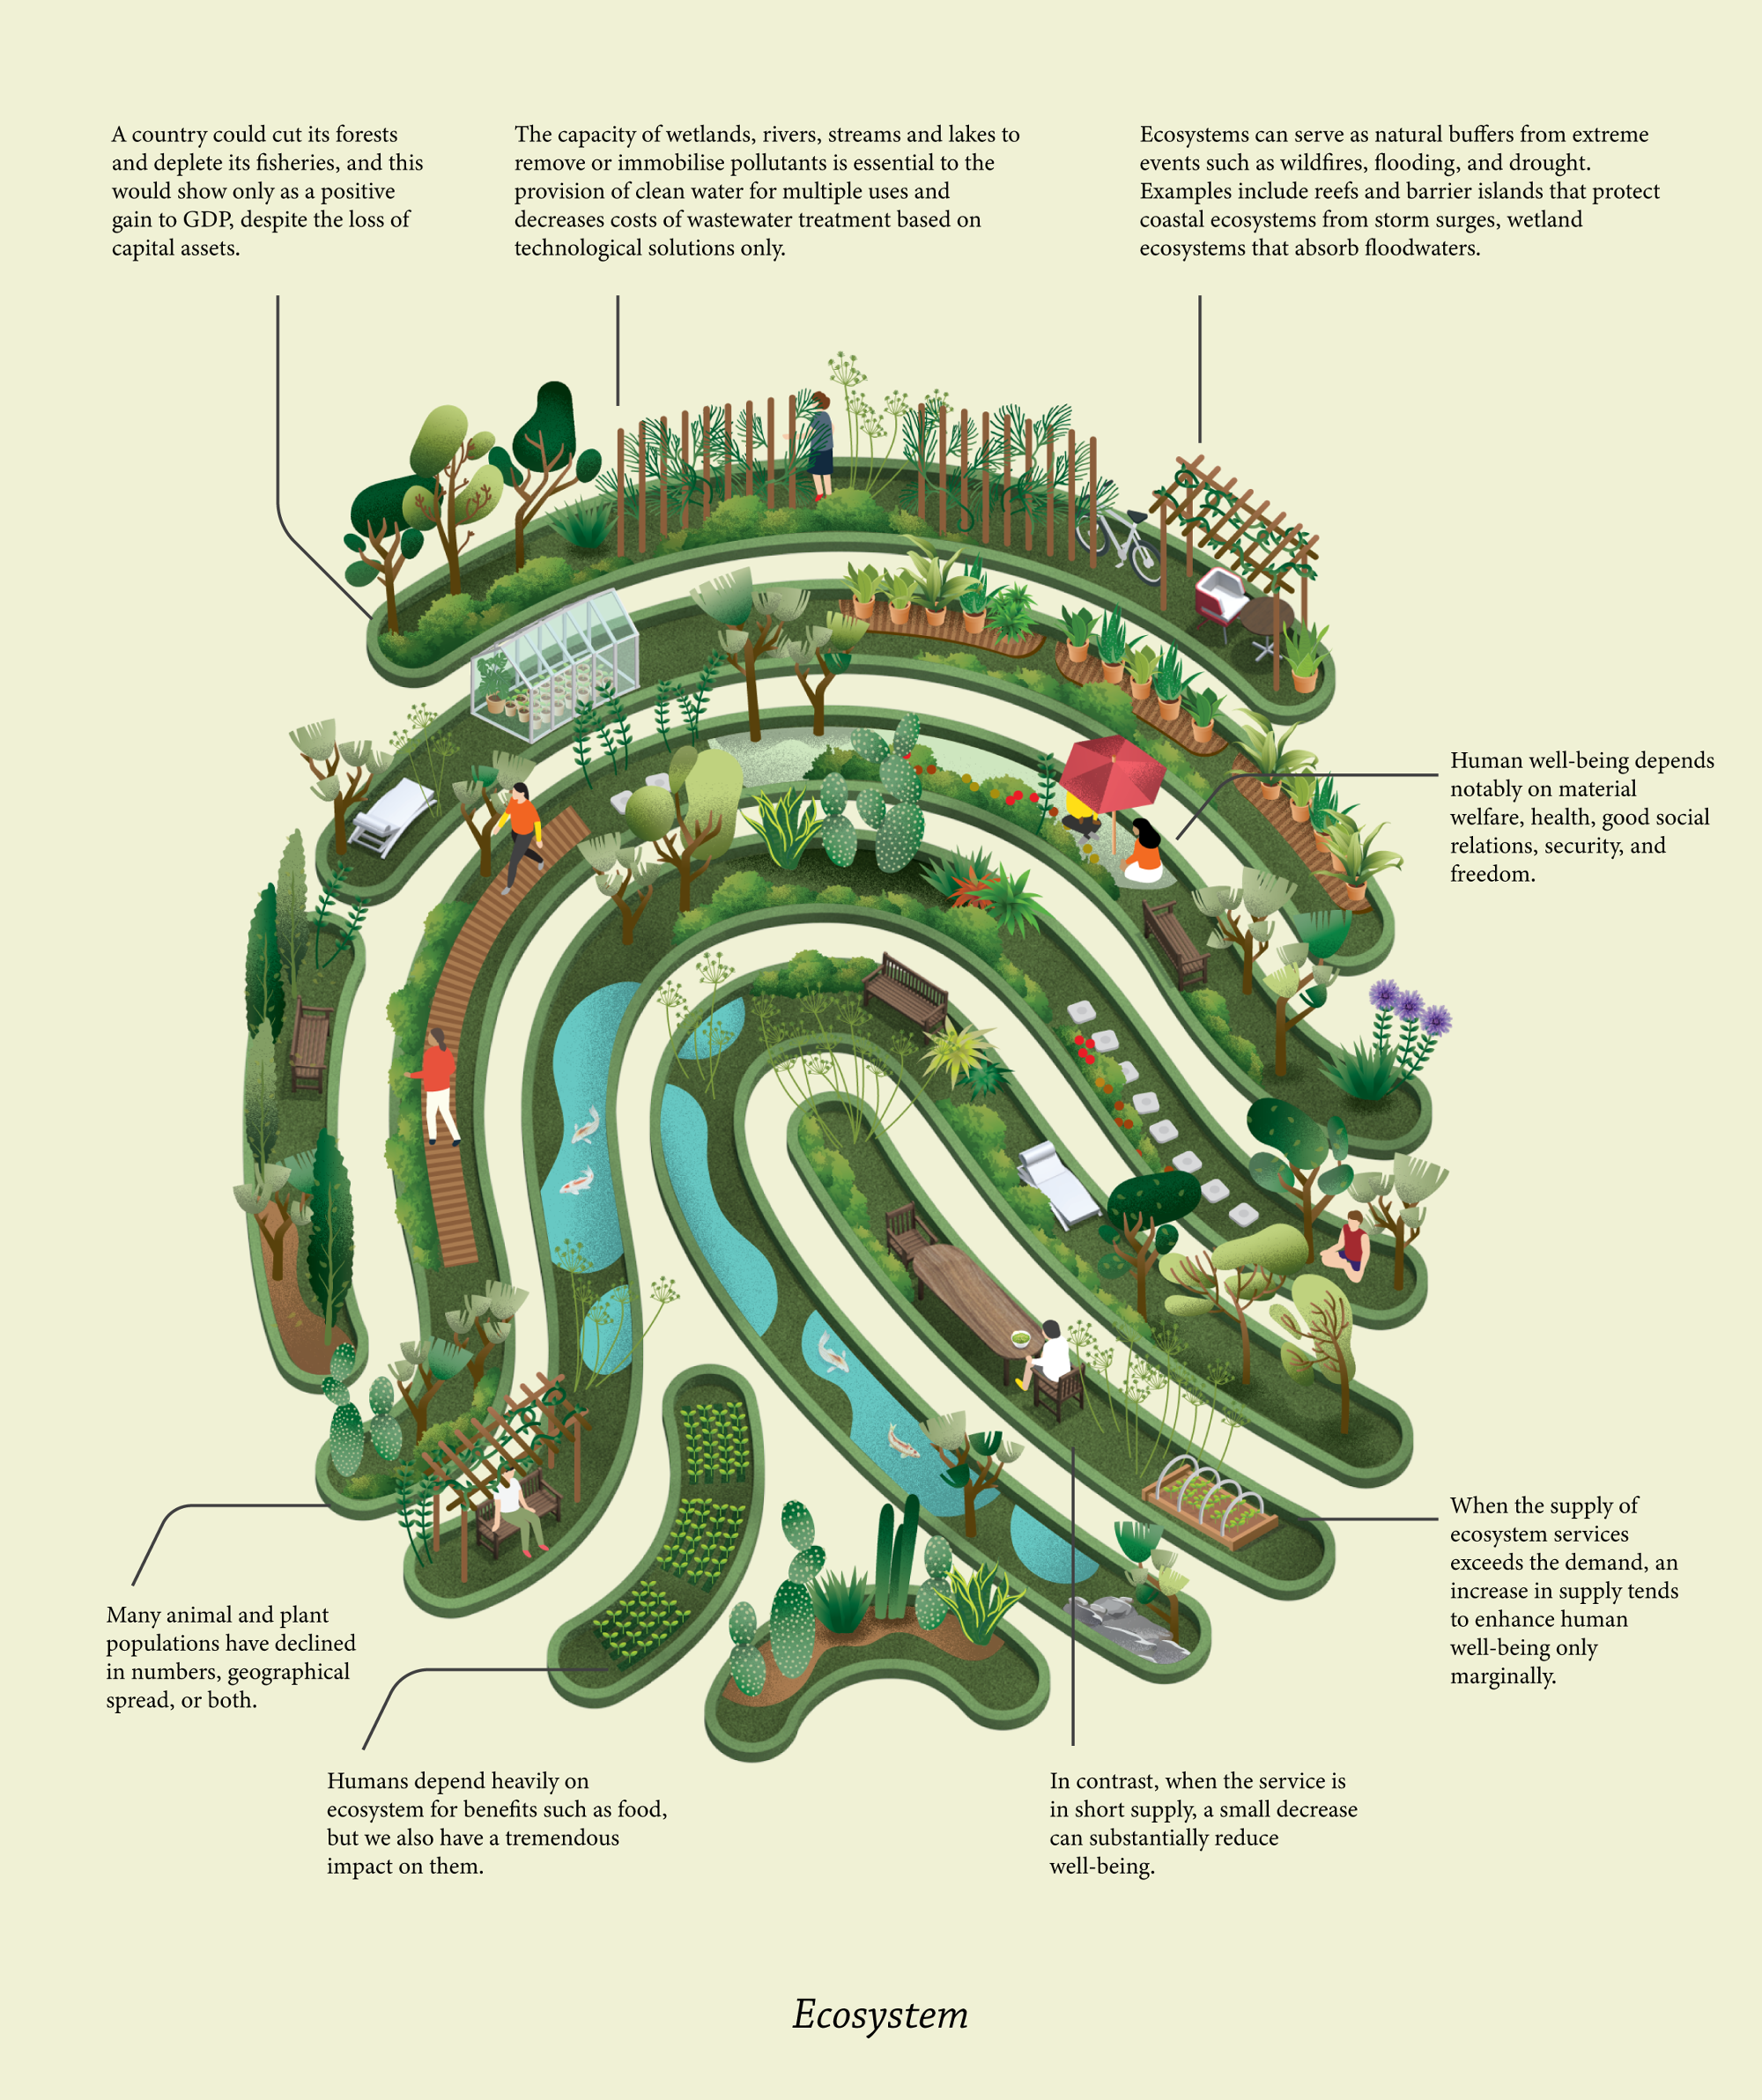 illustrated image full of curving rows seemingly interconnected with lots of trees and greenery inside them, along with ecosystem facts on the sides